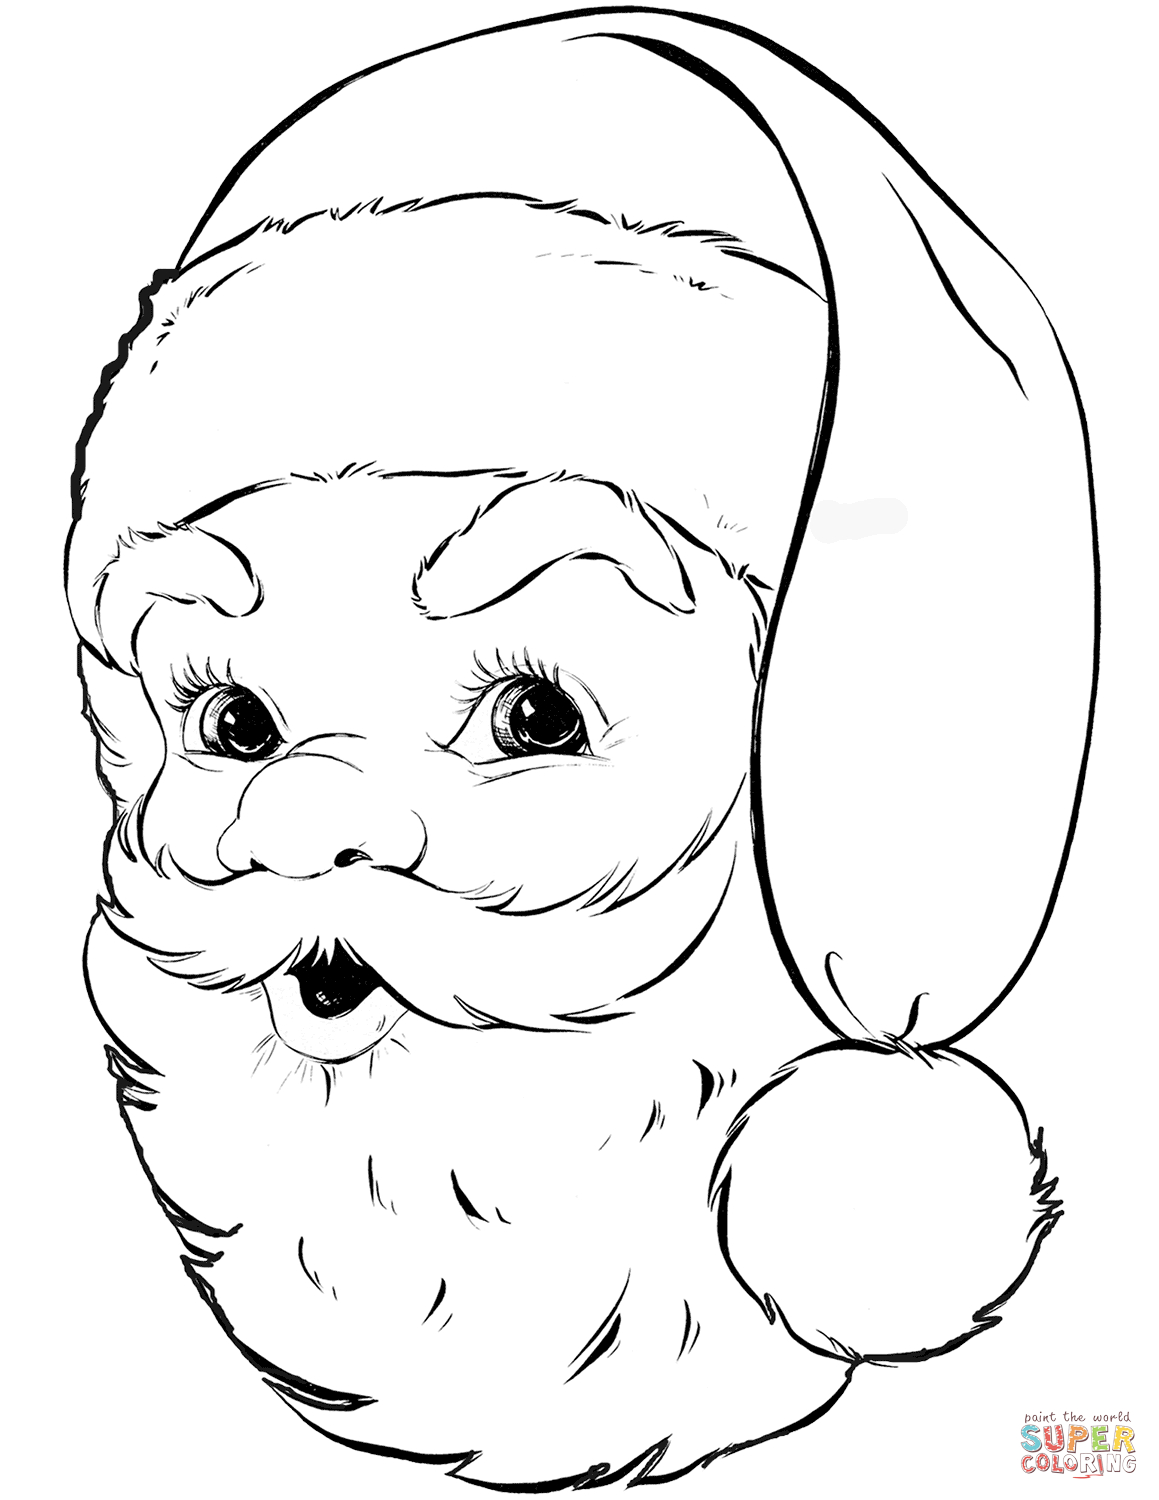 Santa Claus Coloring Pages | Free Coloring Pages - Santa Coloring Pages Printable Free